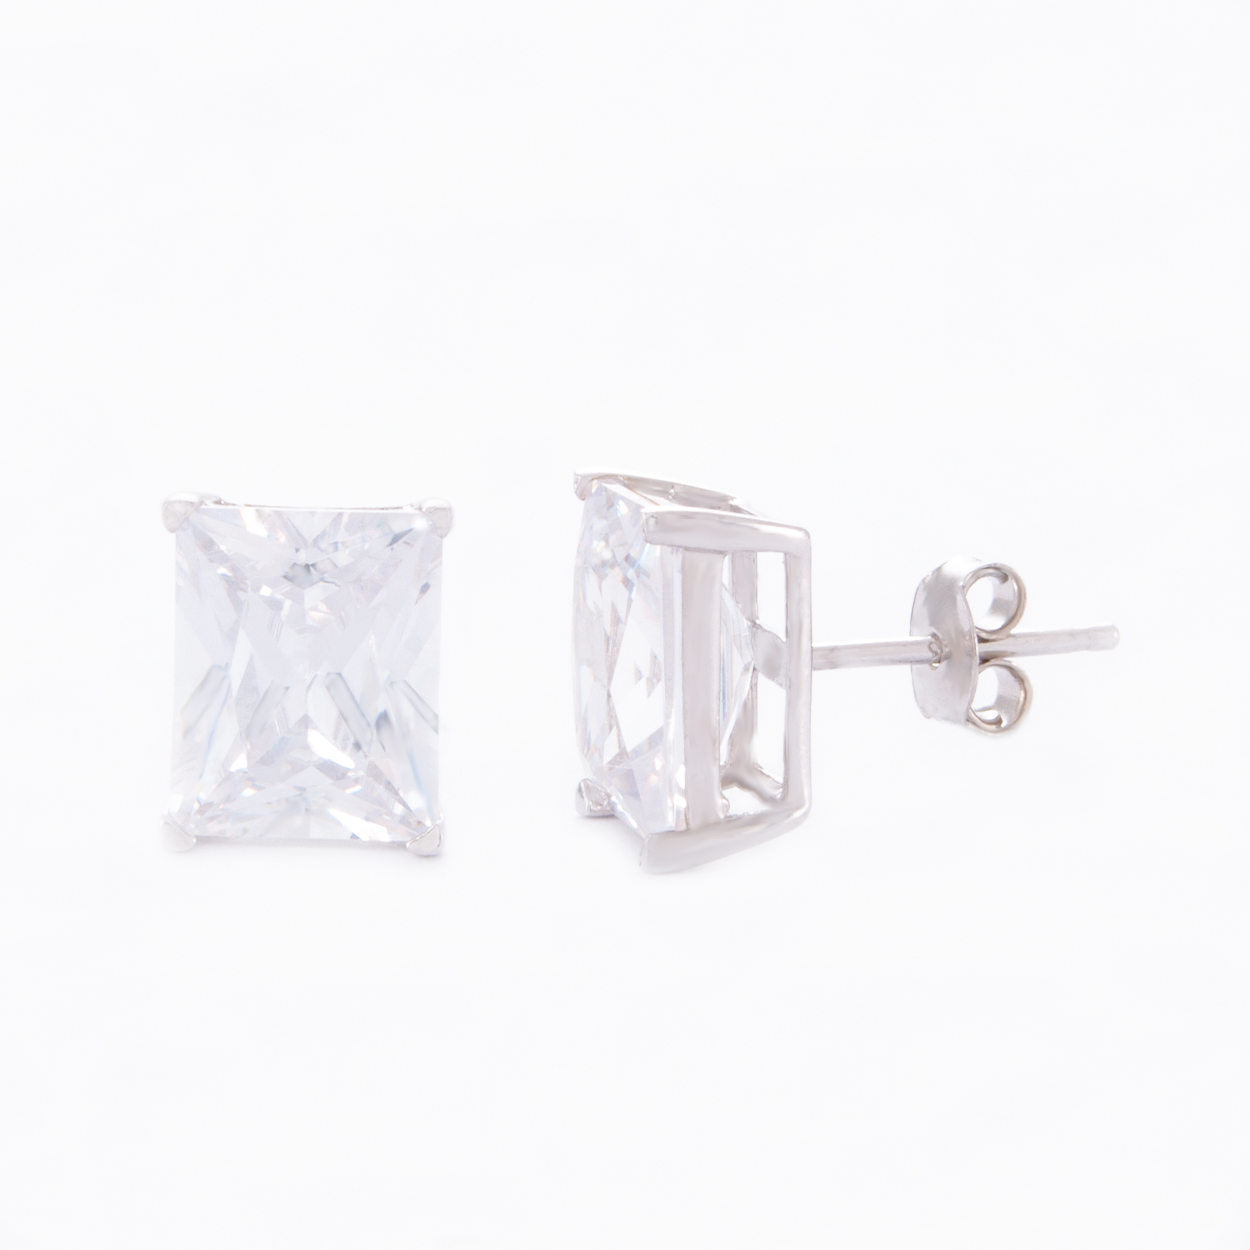 Our Large Baguette Cubic Zirconia Stud Earrings. Shown here, with a beautiful big sparkling rectangular CZ, set in 925 sterling silver. In short, this pair of gems make a big statement! And, are the perfect gift for someone special.